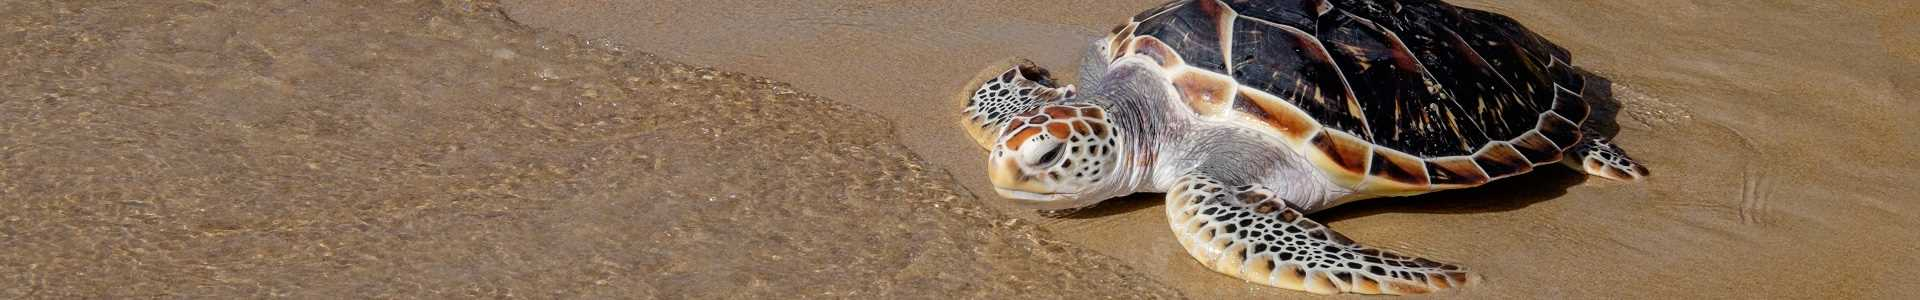 SLP Environmental CSR Thailand Turtle Release Corporate Social Responsiblity Asia-px_Reduced